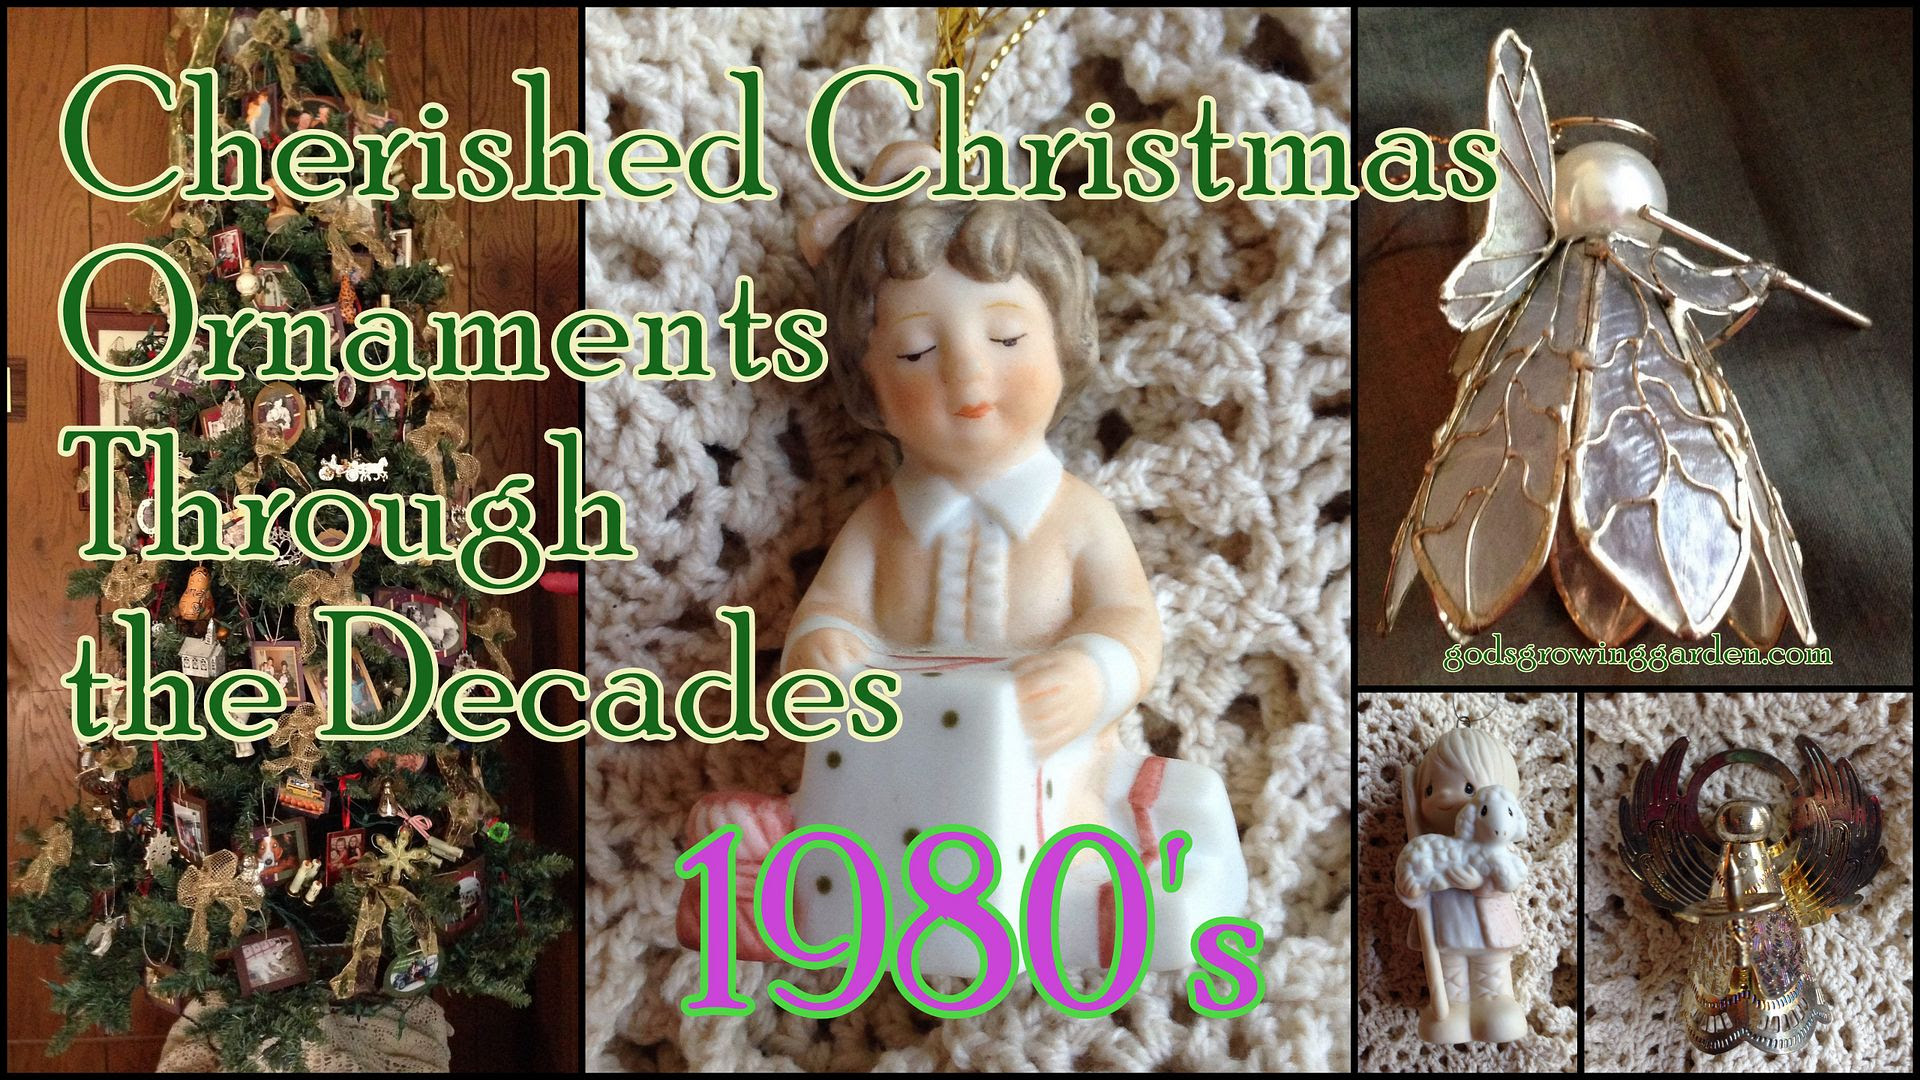 by Angie Ouellette-Tower for http://www.godsgrowinggarden.com/ photo Ornaments-002_zpsay101uv7.jpg